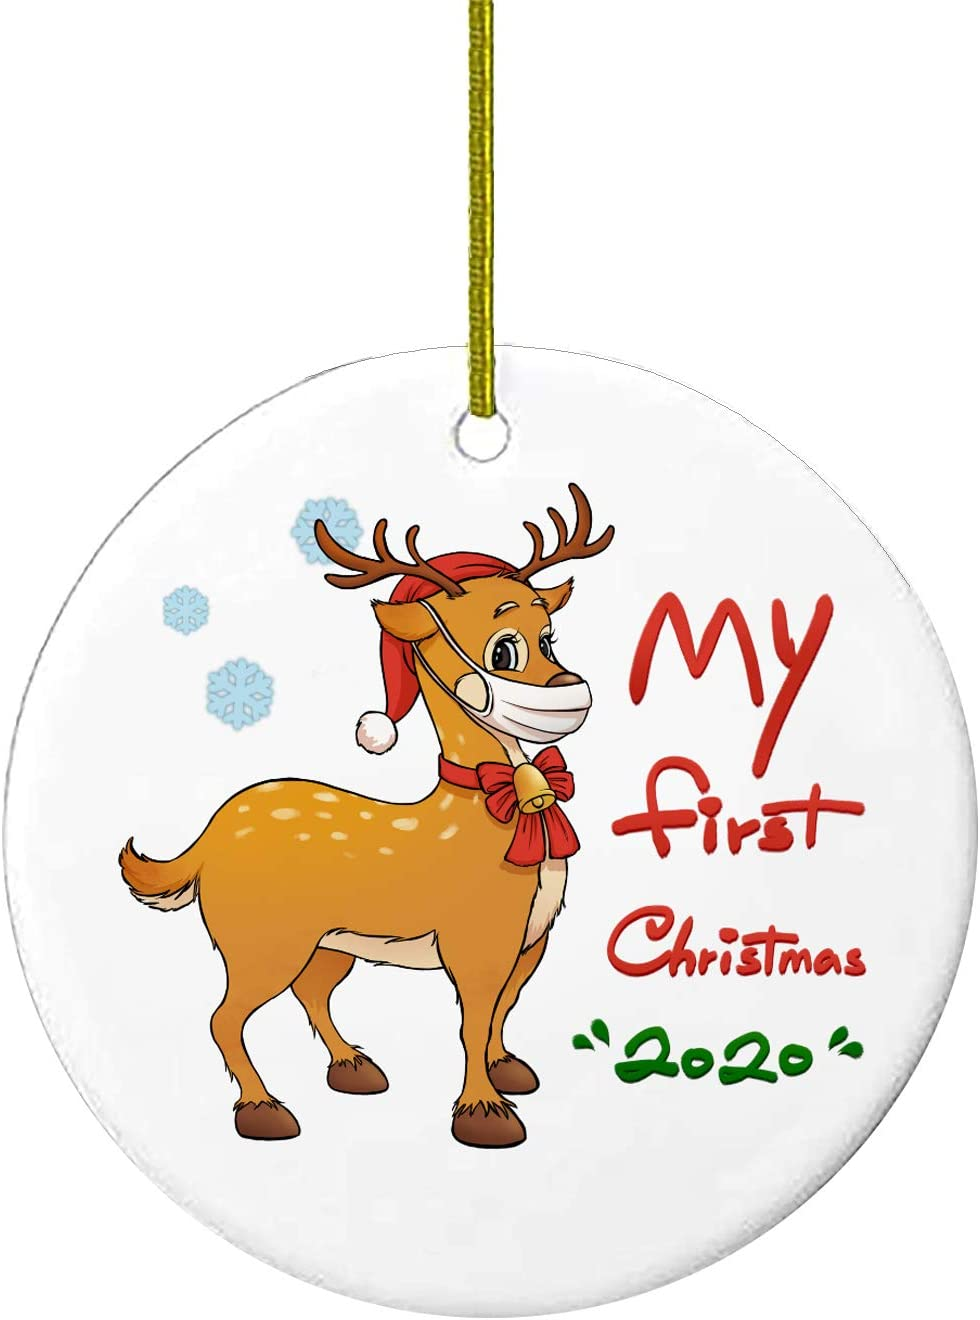 2020 Christmas Ornaments Friends Quarantine Gift | Holiday Xmas Tree Decorations Ornament The One Where We were Quarantined | Ceramic Holiday Decor Santa (My First Christmas)